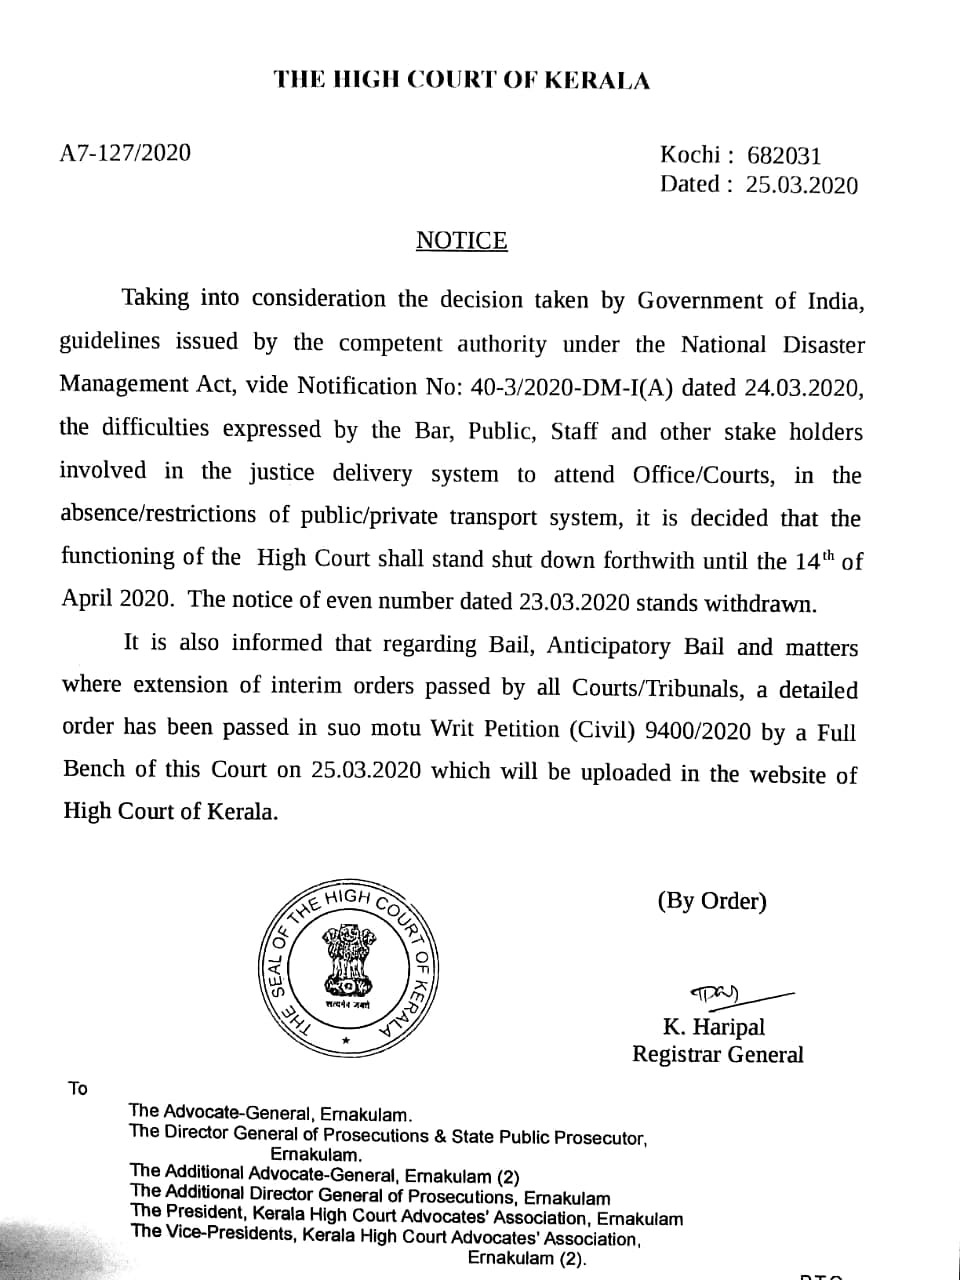 Notice issued today by the Kerala High Court